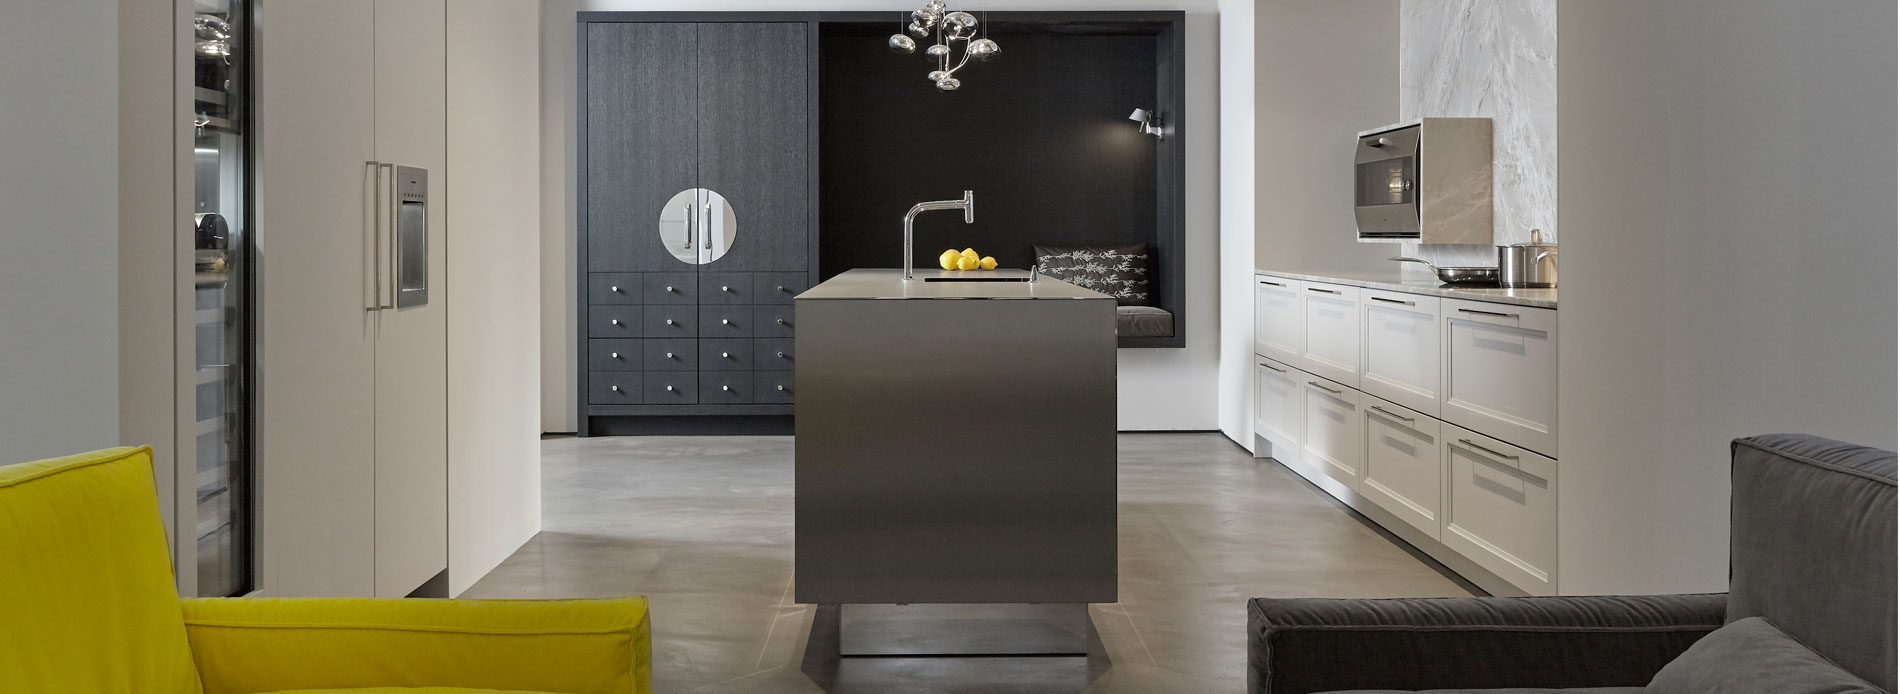 SIEMATIC W. GIENGER